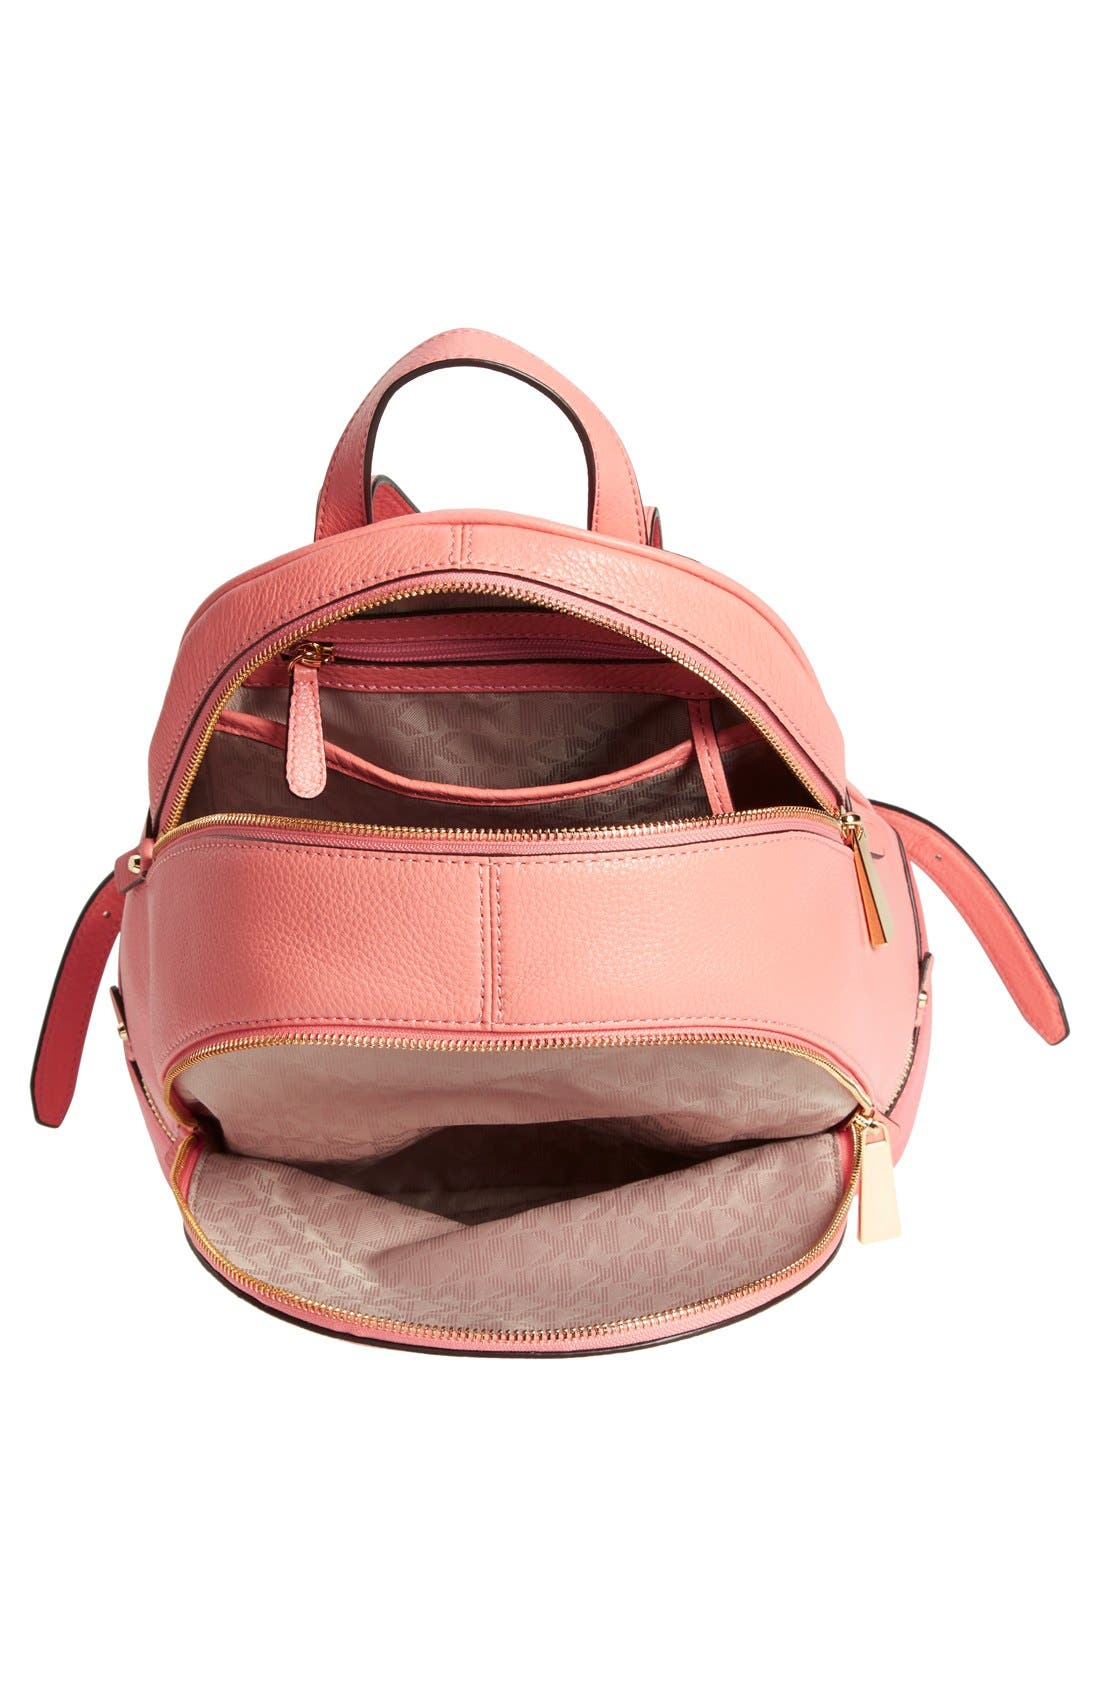 'Small Rhea' Colorblock Leather Backpack,                             Alternate thumbnail 3, color,                             950